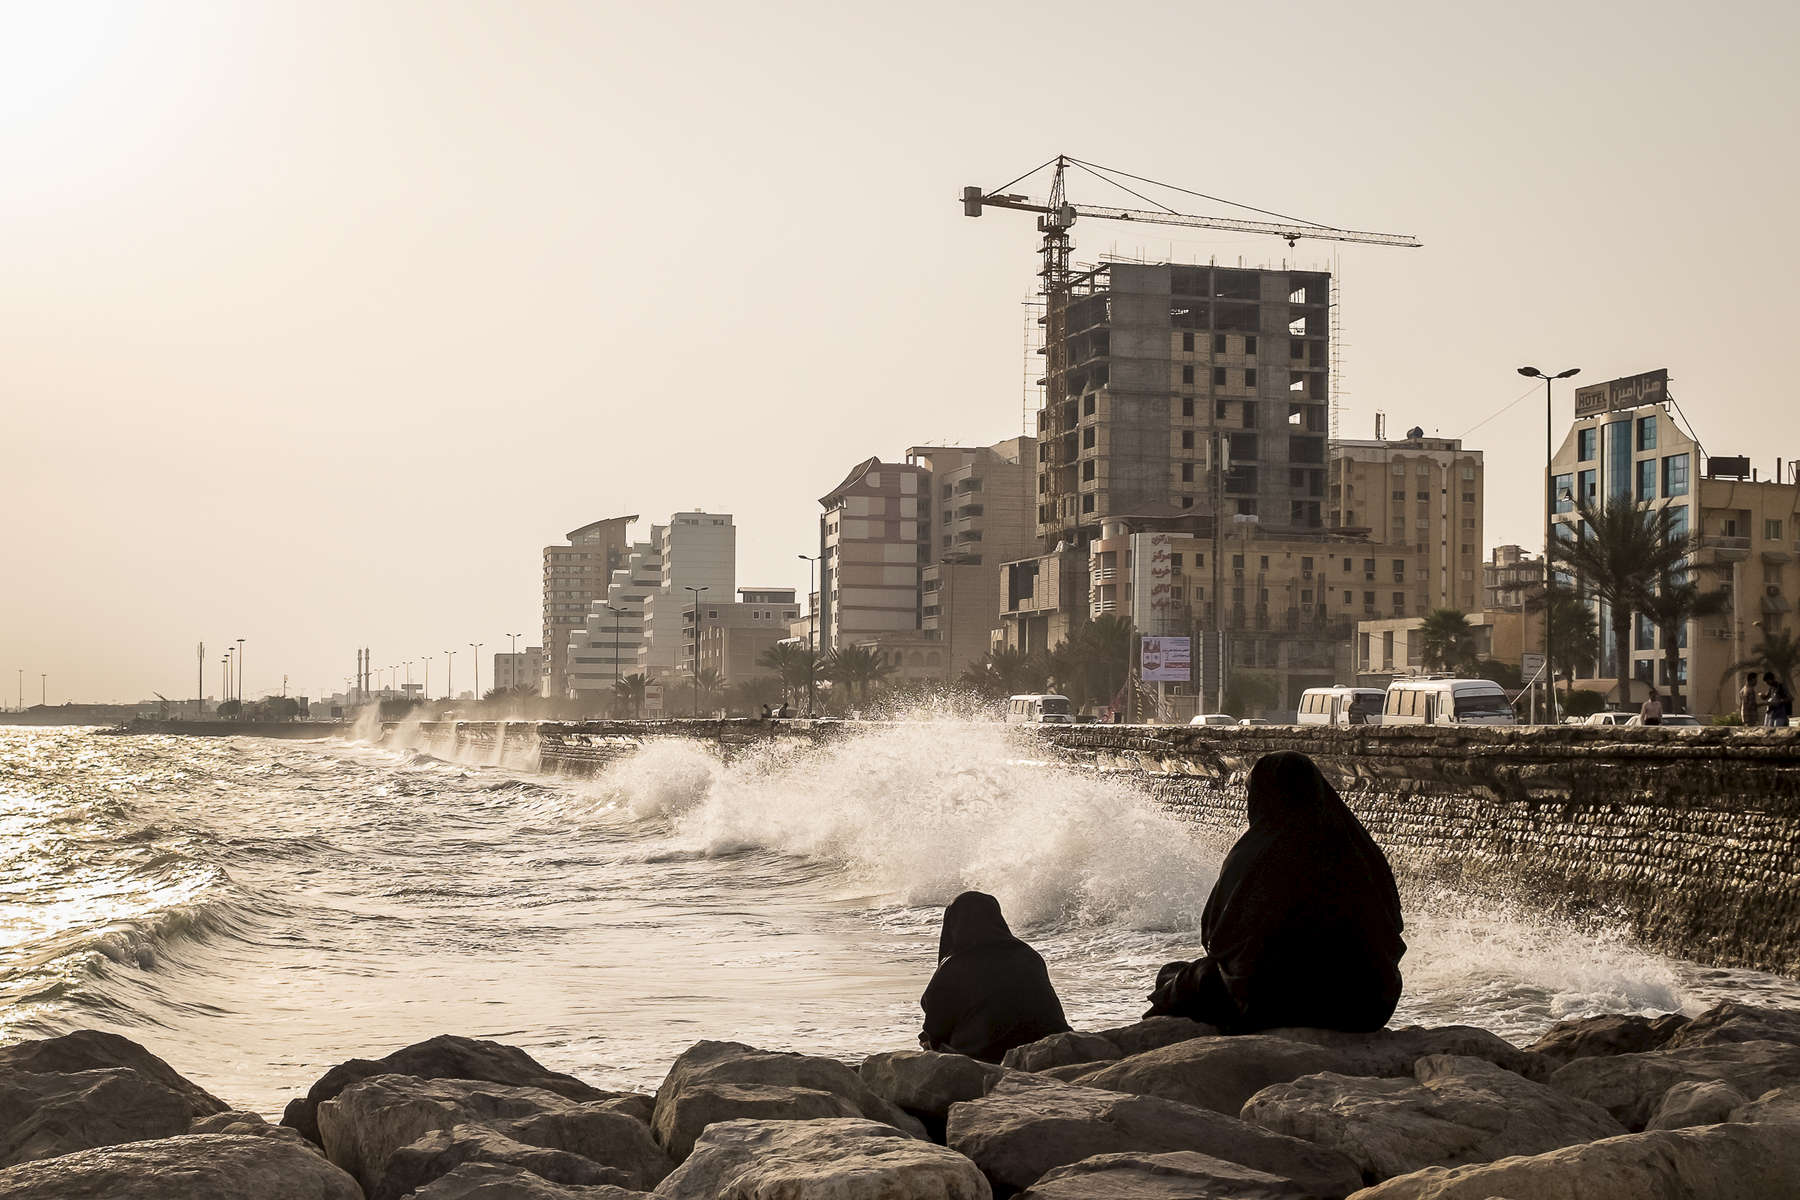 Women taking in the sunset view and high tide waves crashing into a breakwall, Bandar Abbas, Persian Gulf Coast, Iran.